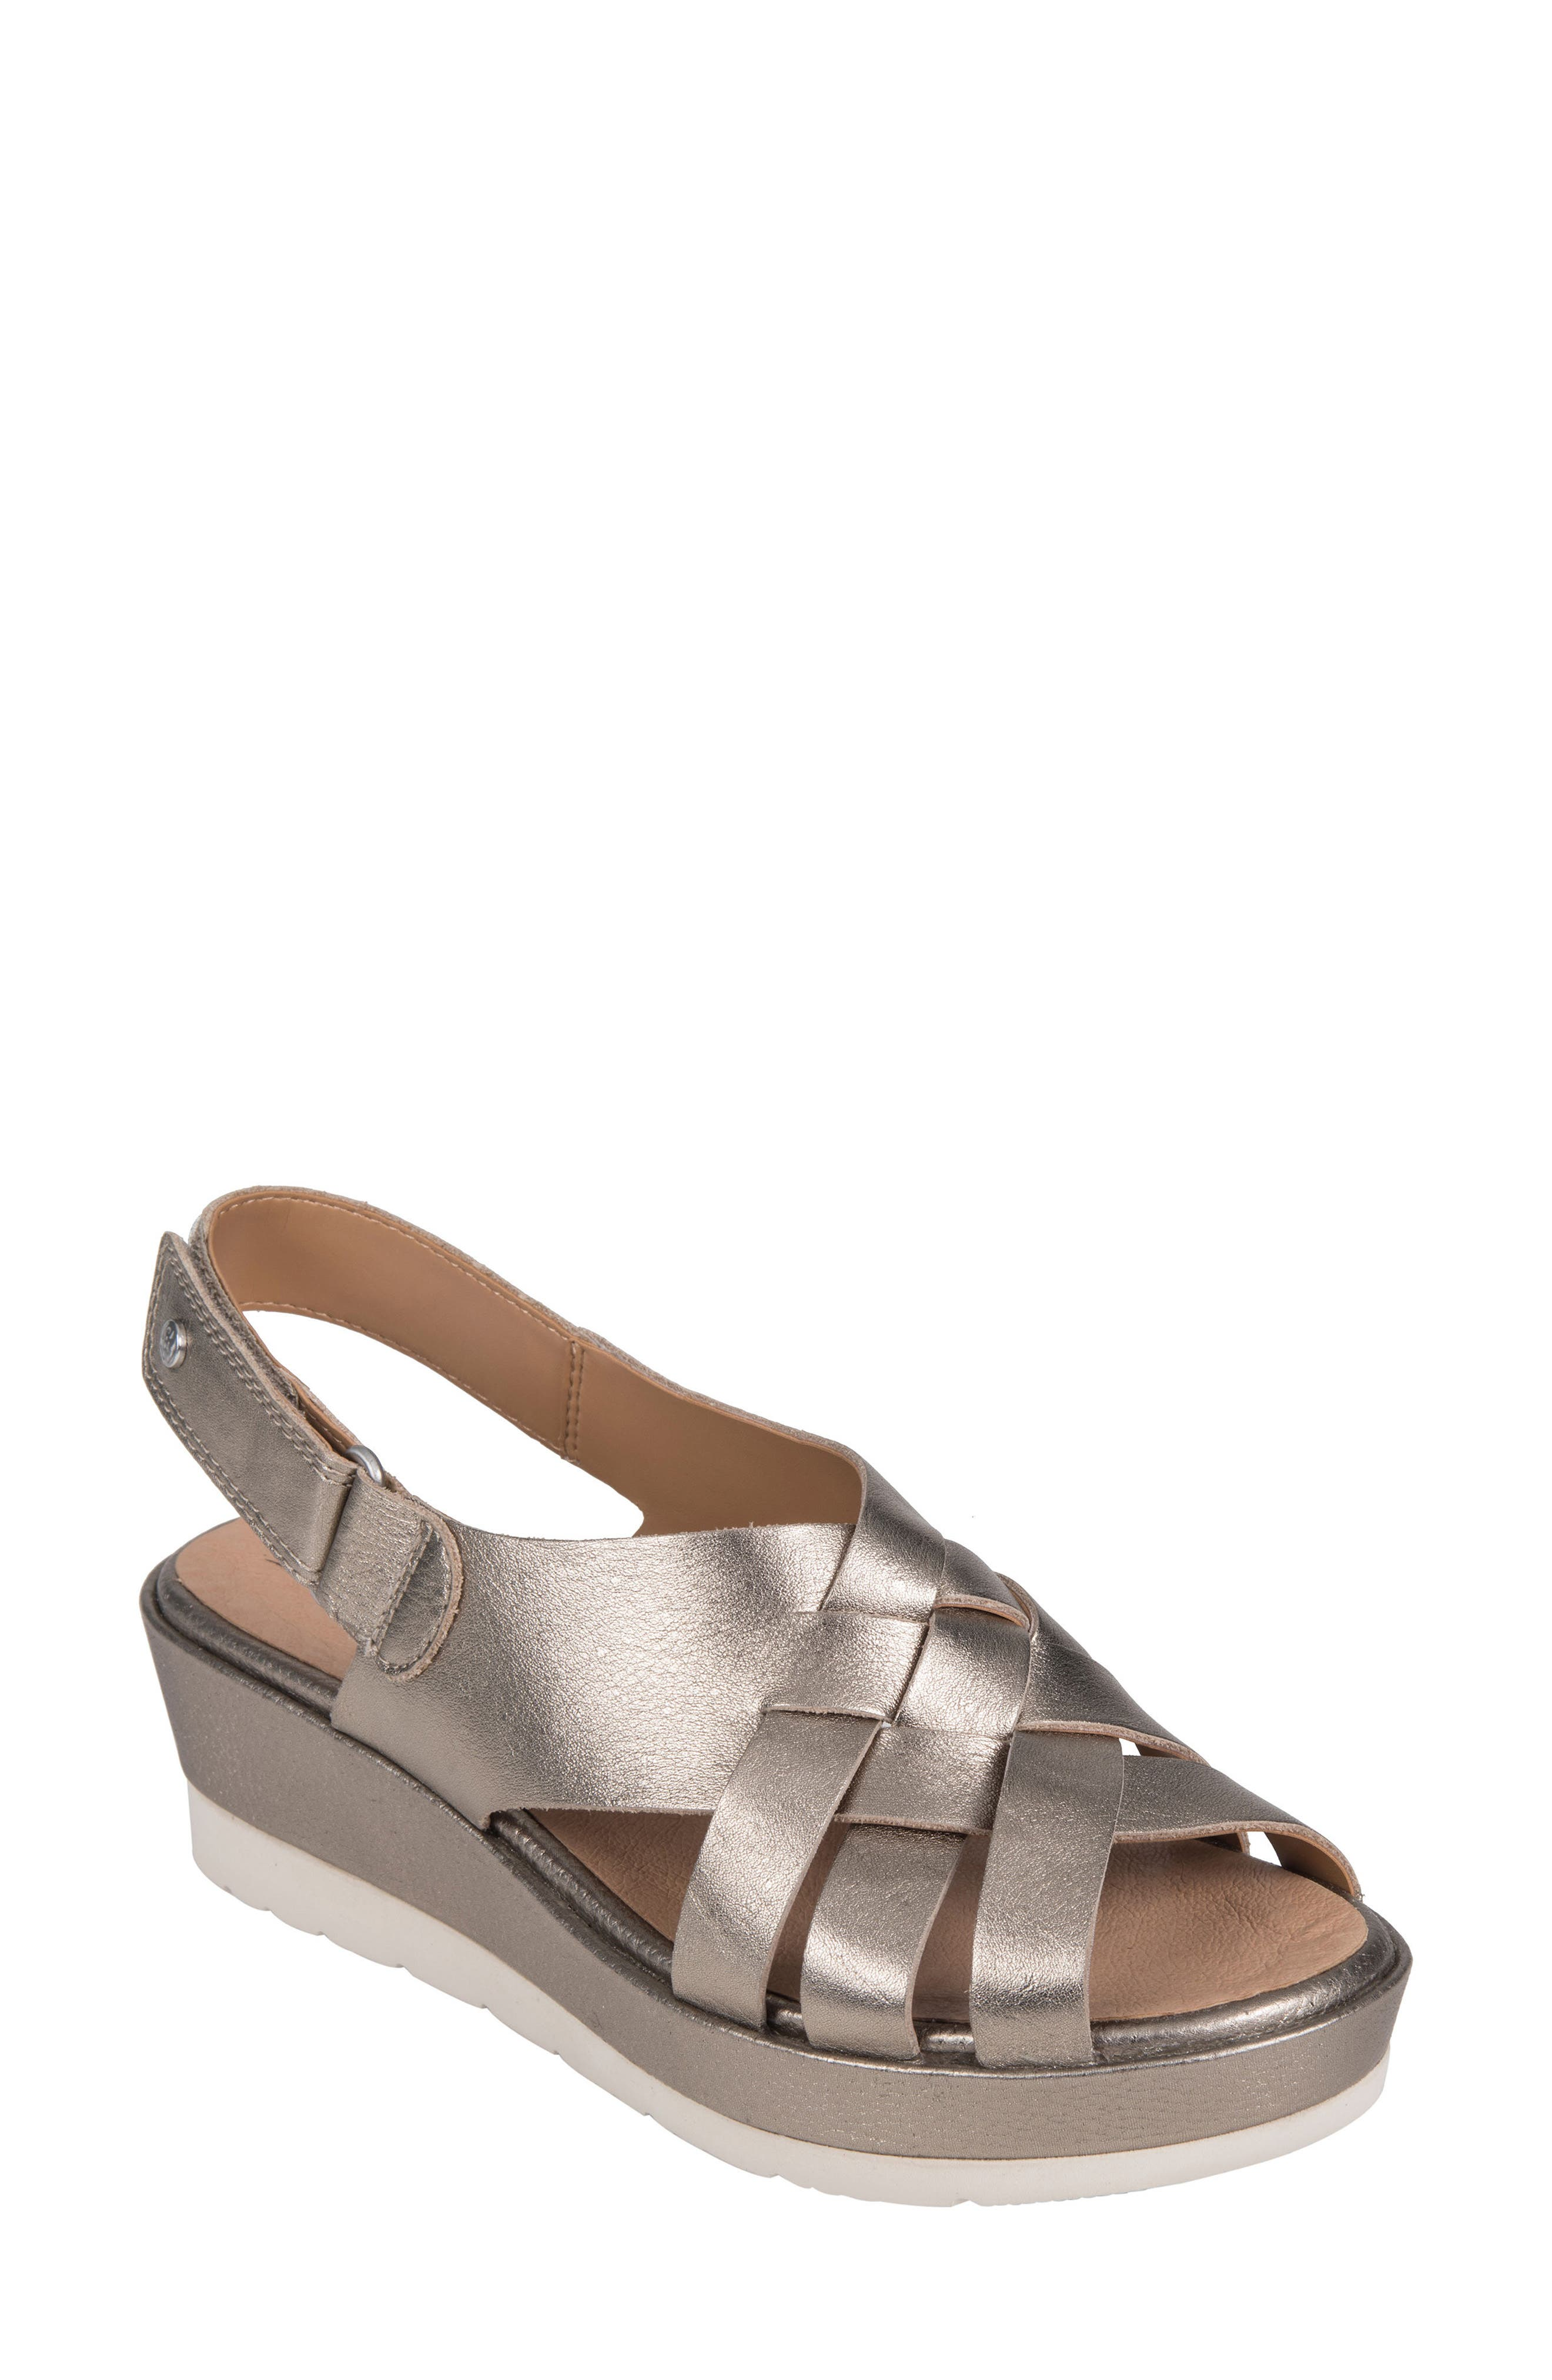 Sunflower Wedge Sandal,                         Main,                         color, WASHED GOLD METALLIC LEATHER